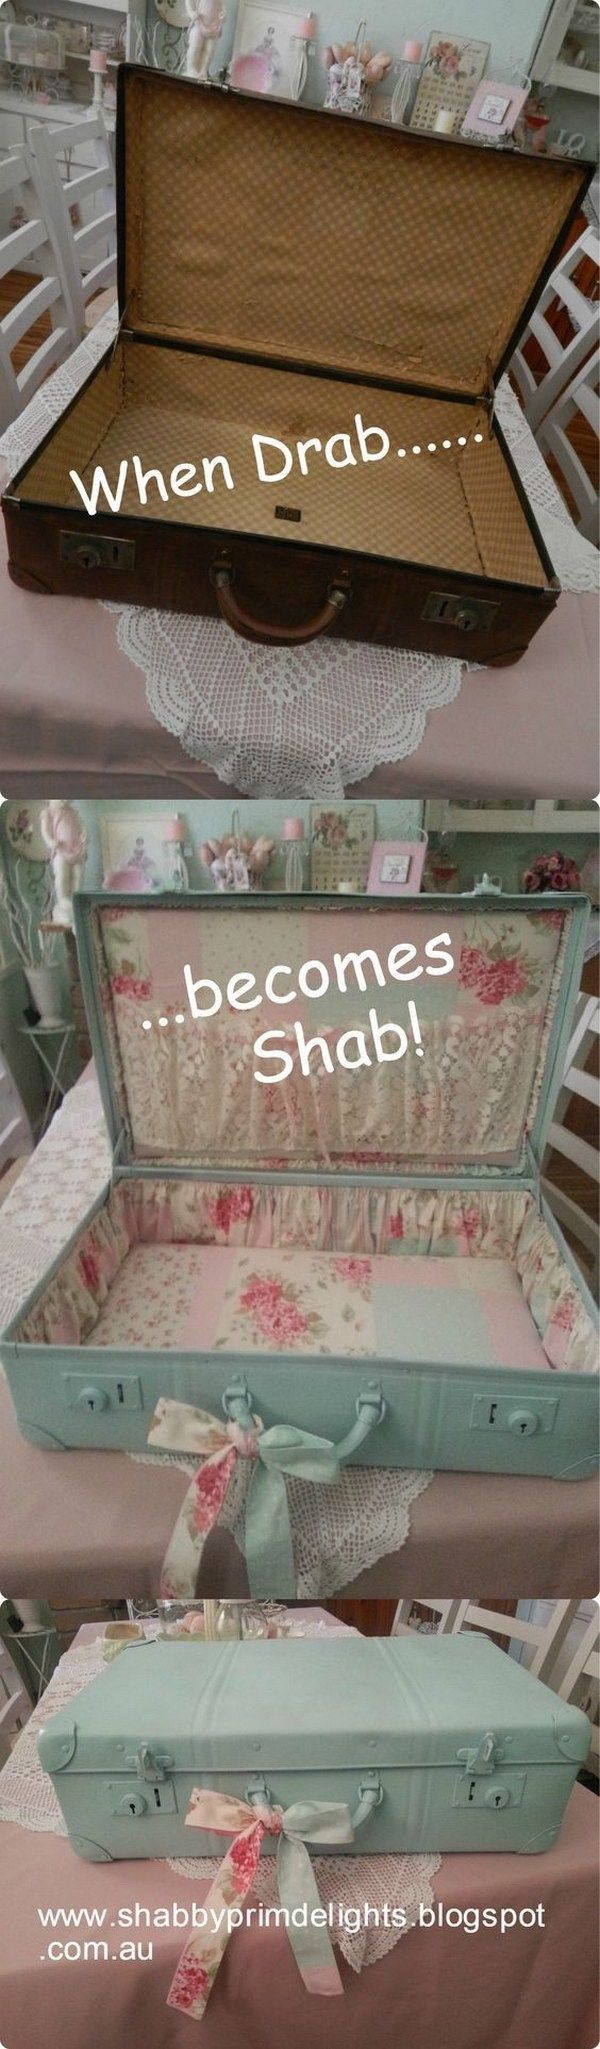 Vintage Suitcase Makeover. Give the old suitcase a pretty and feminine look with some turquoise paints and some floral fabric.